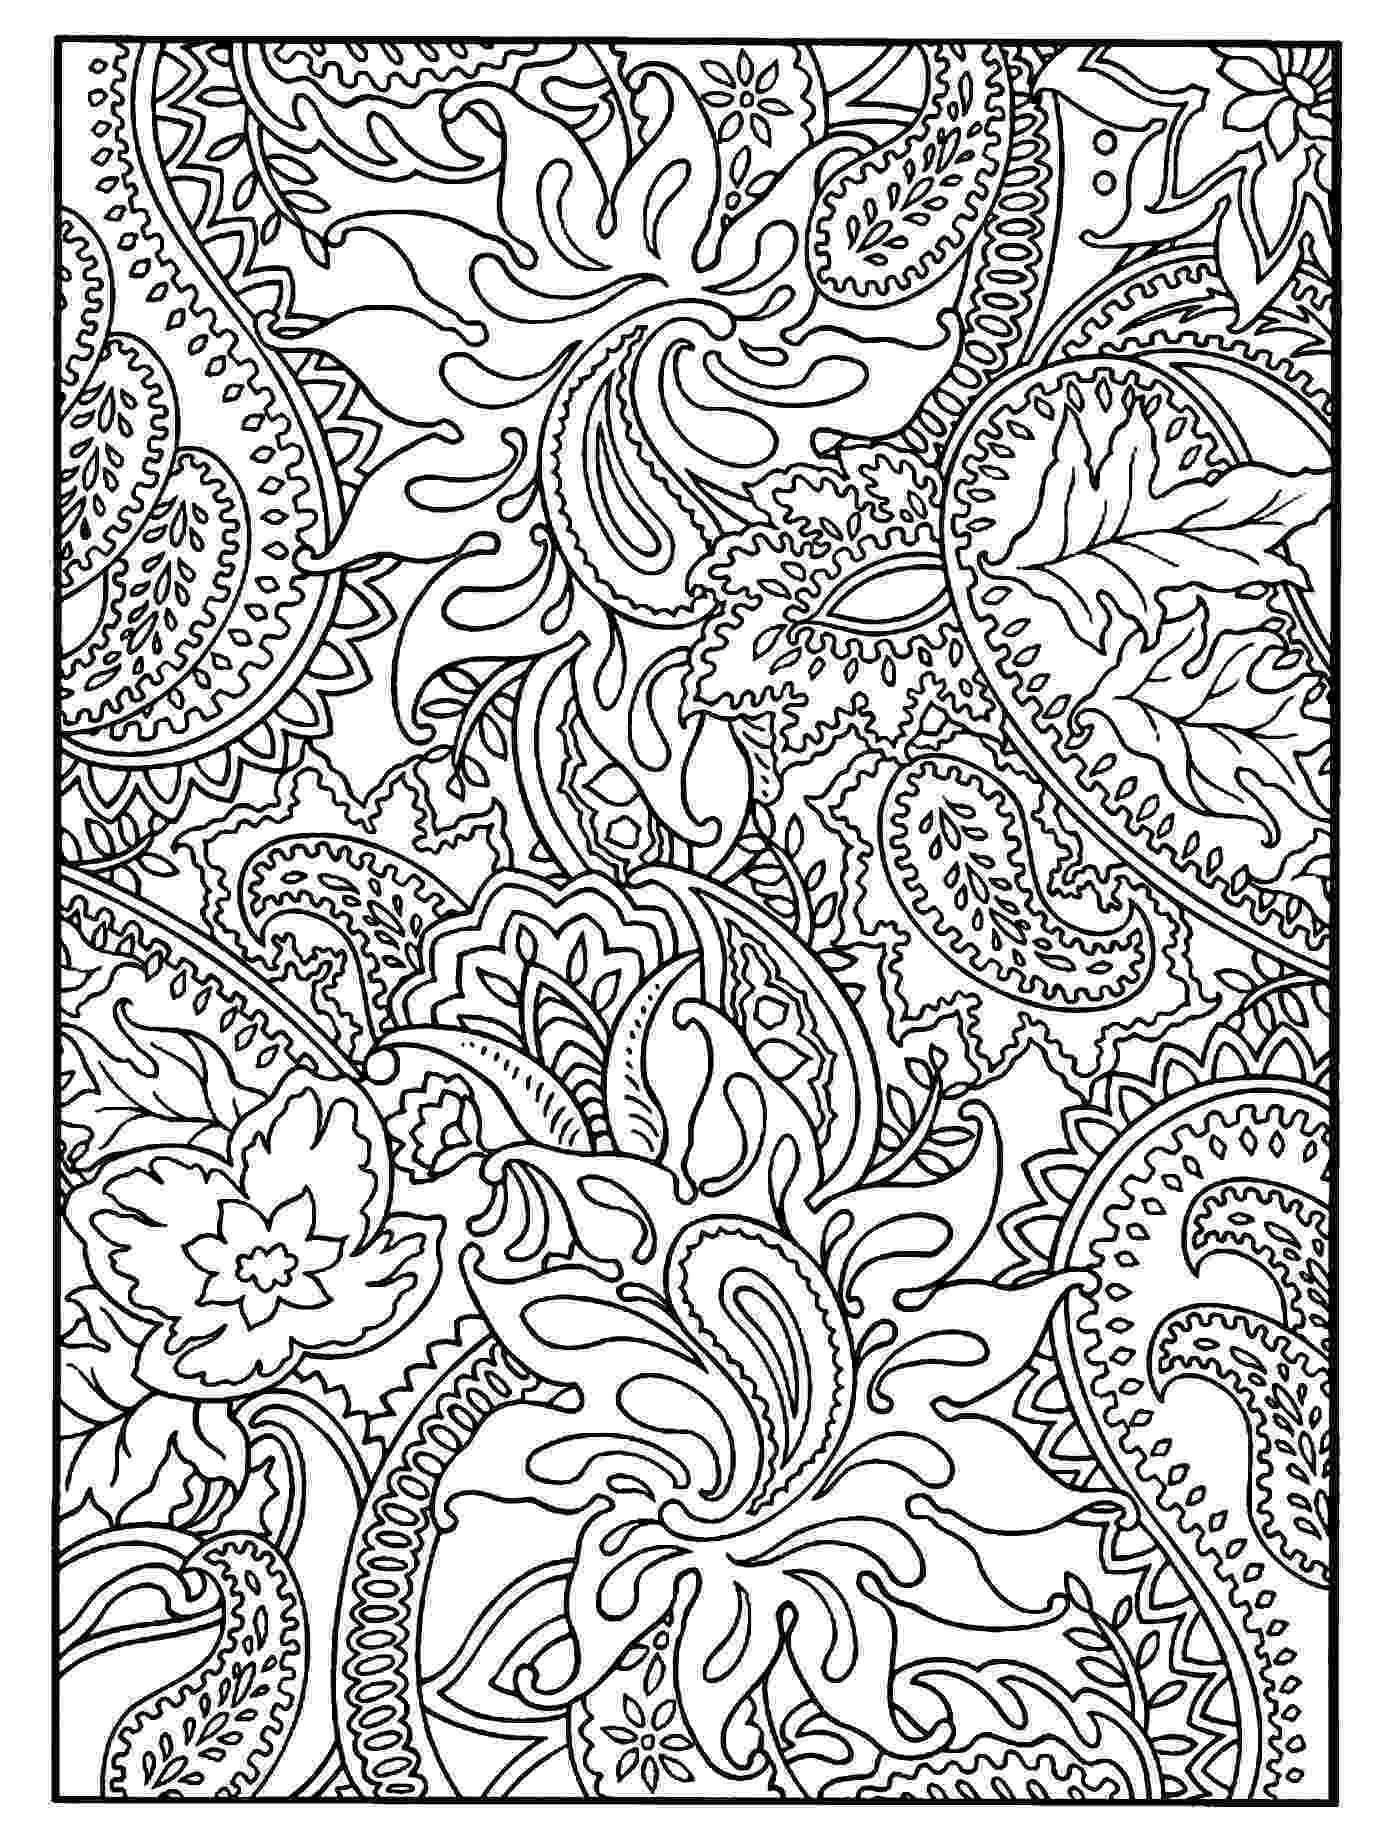 full page coloring pages full size coloring pages for adults at getcoloringscom full pages coloring page